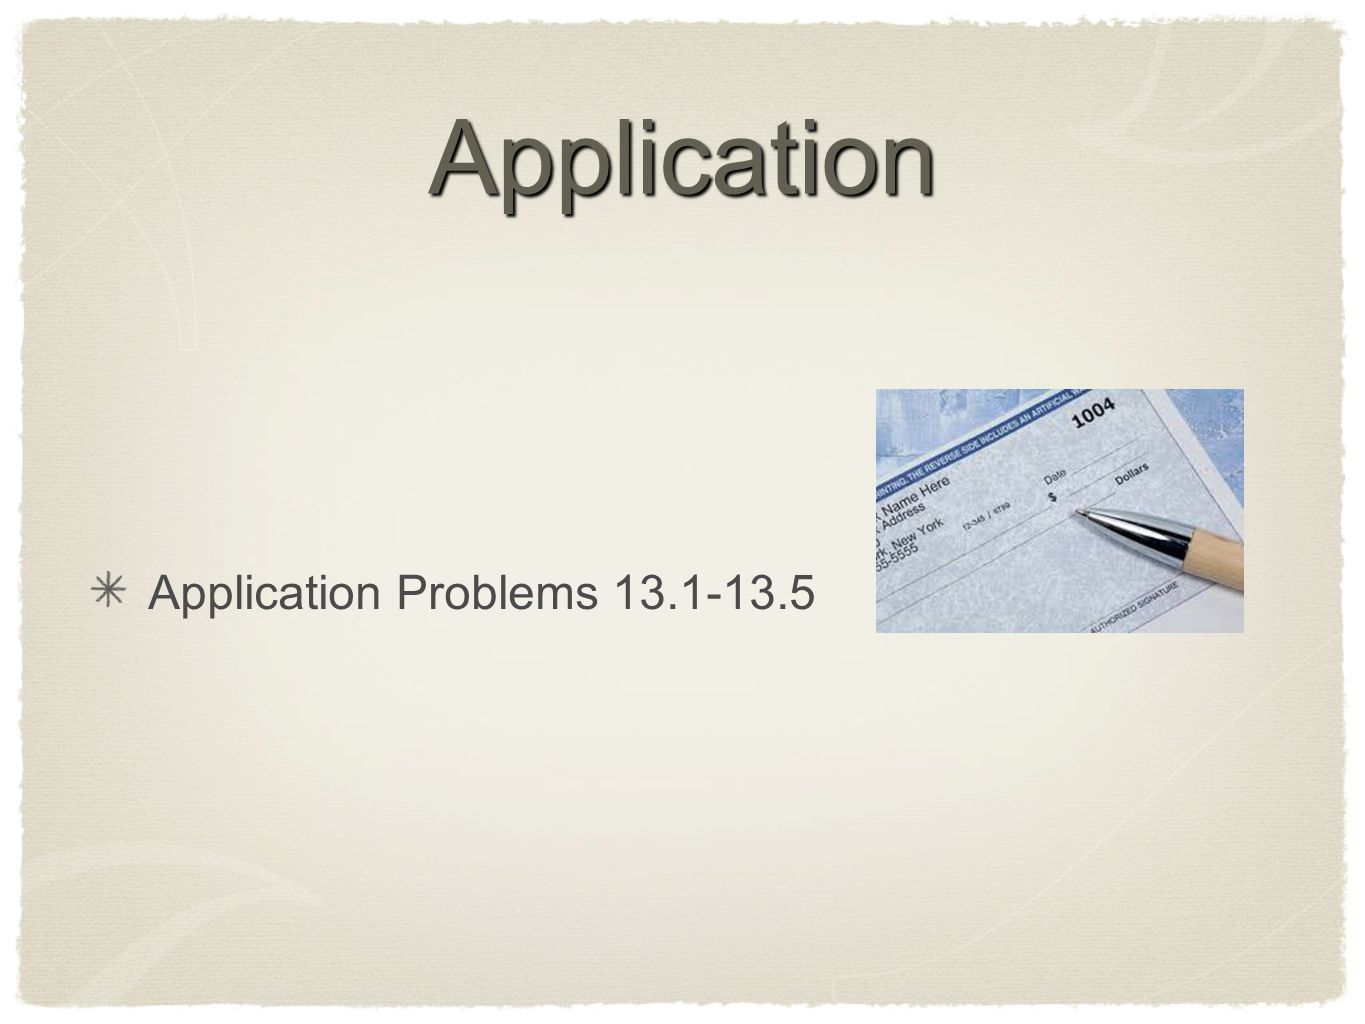 Application Application Problems